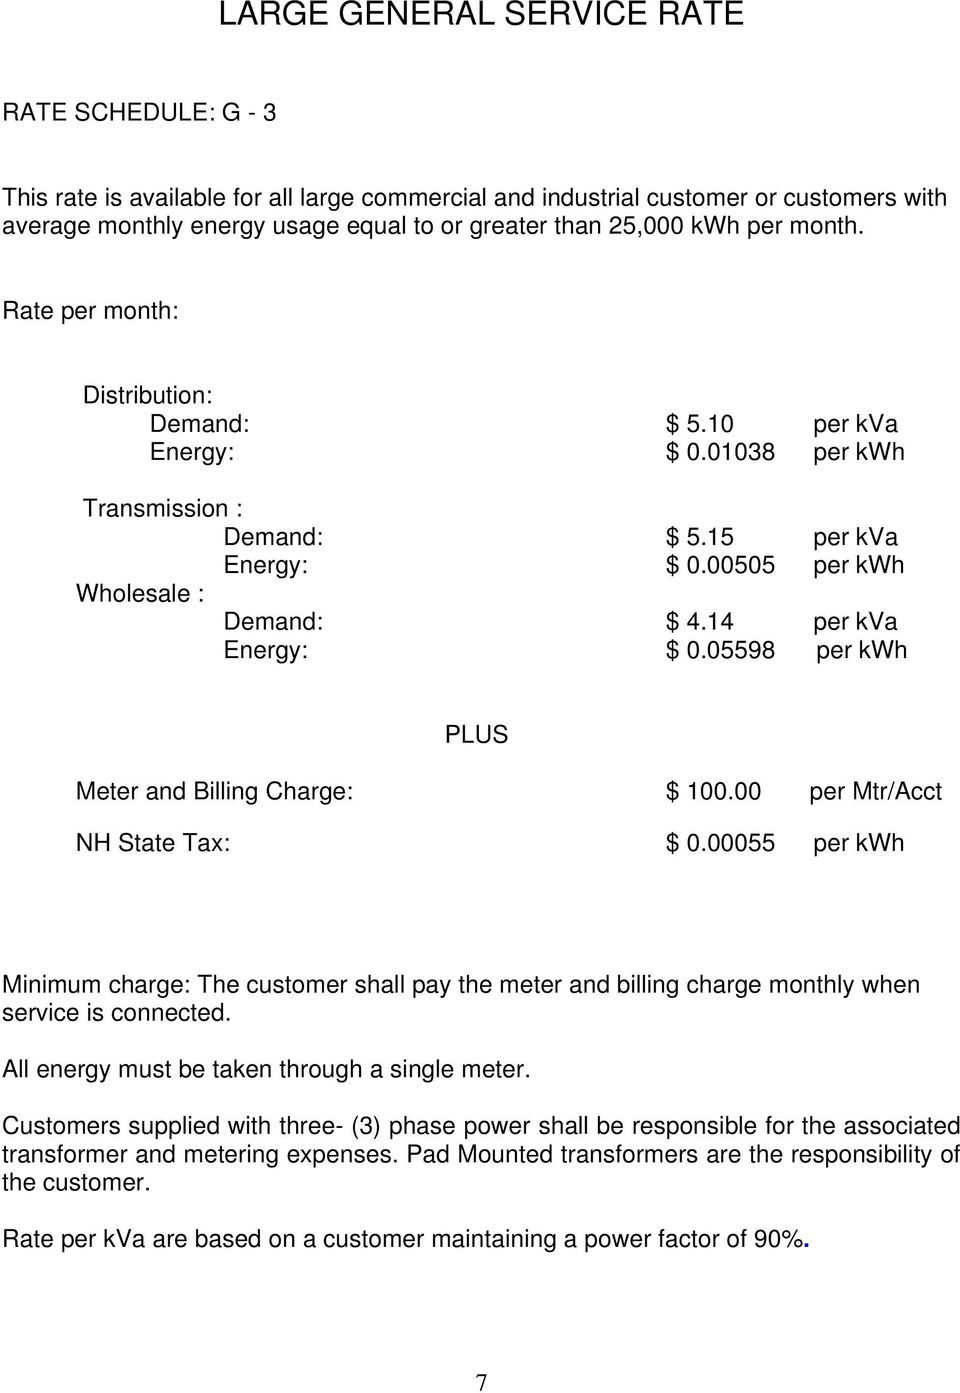 14 per kva Energy: $ 0.05598 per kwh Meter and Billing Charge: $ 100.00 per Mtr/Acct All energy must be taken through a single meter.